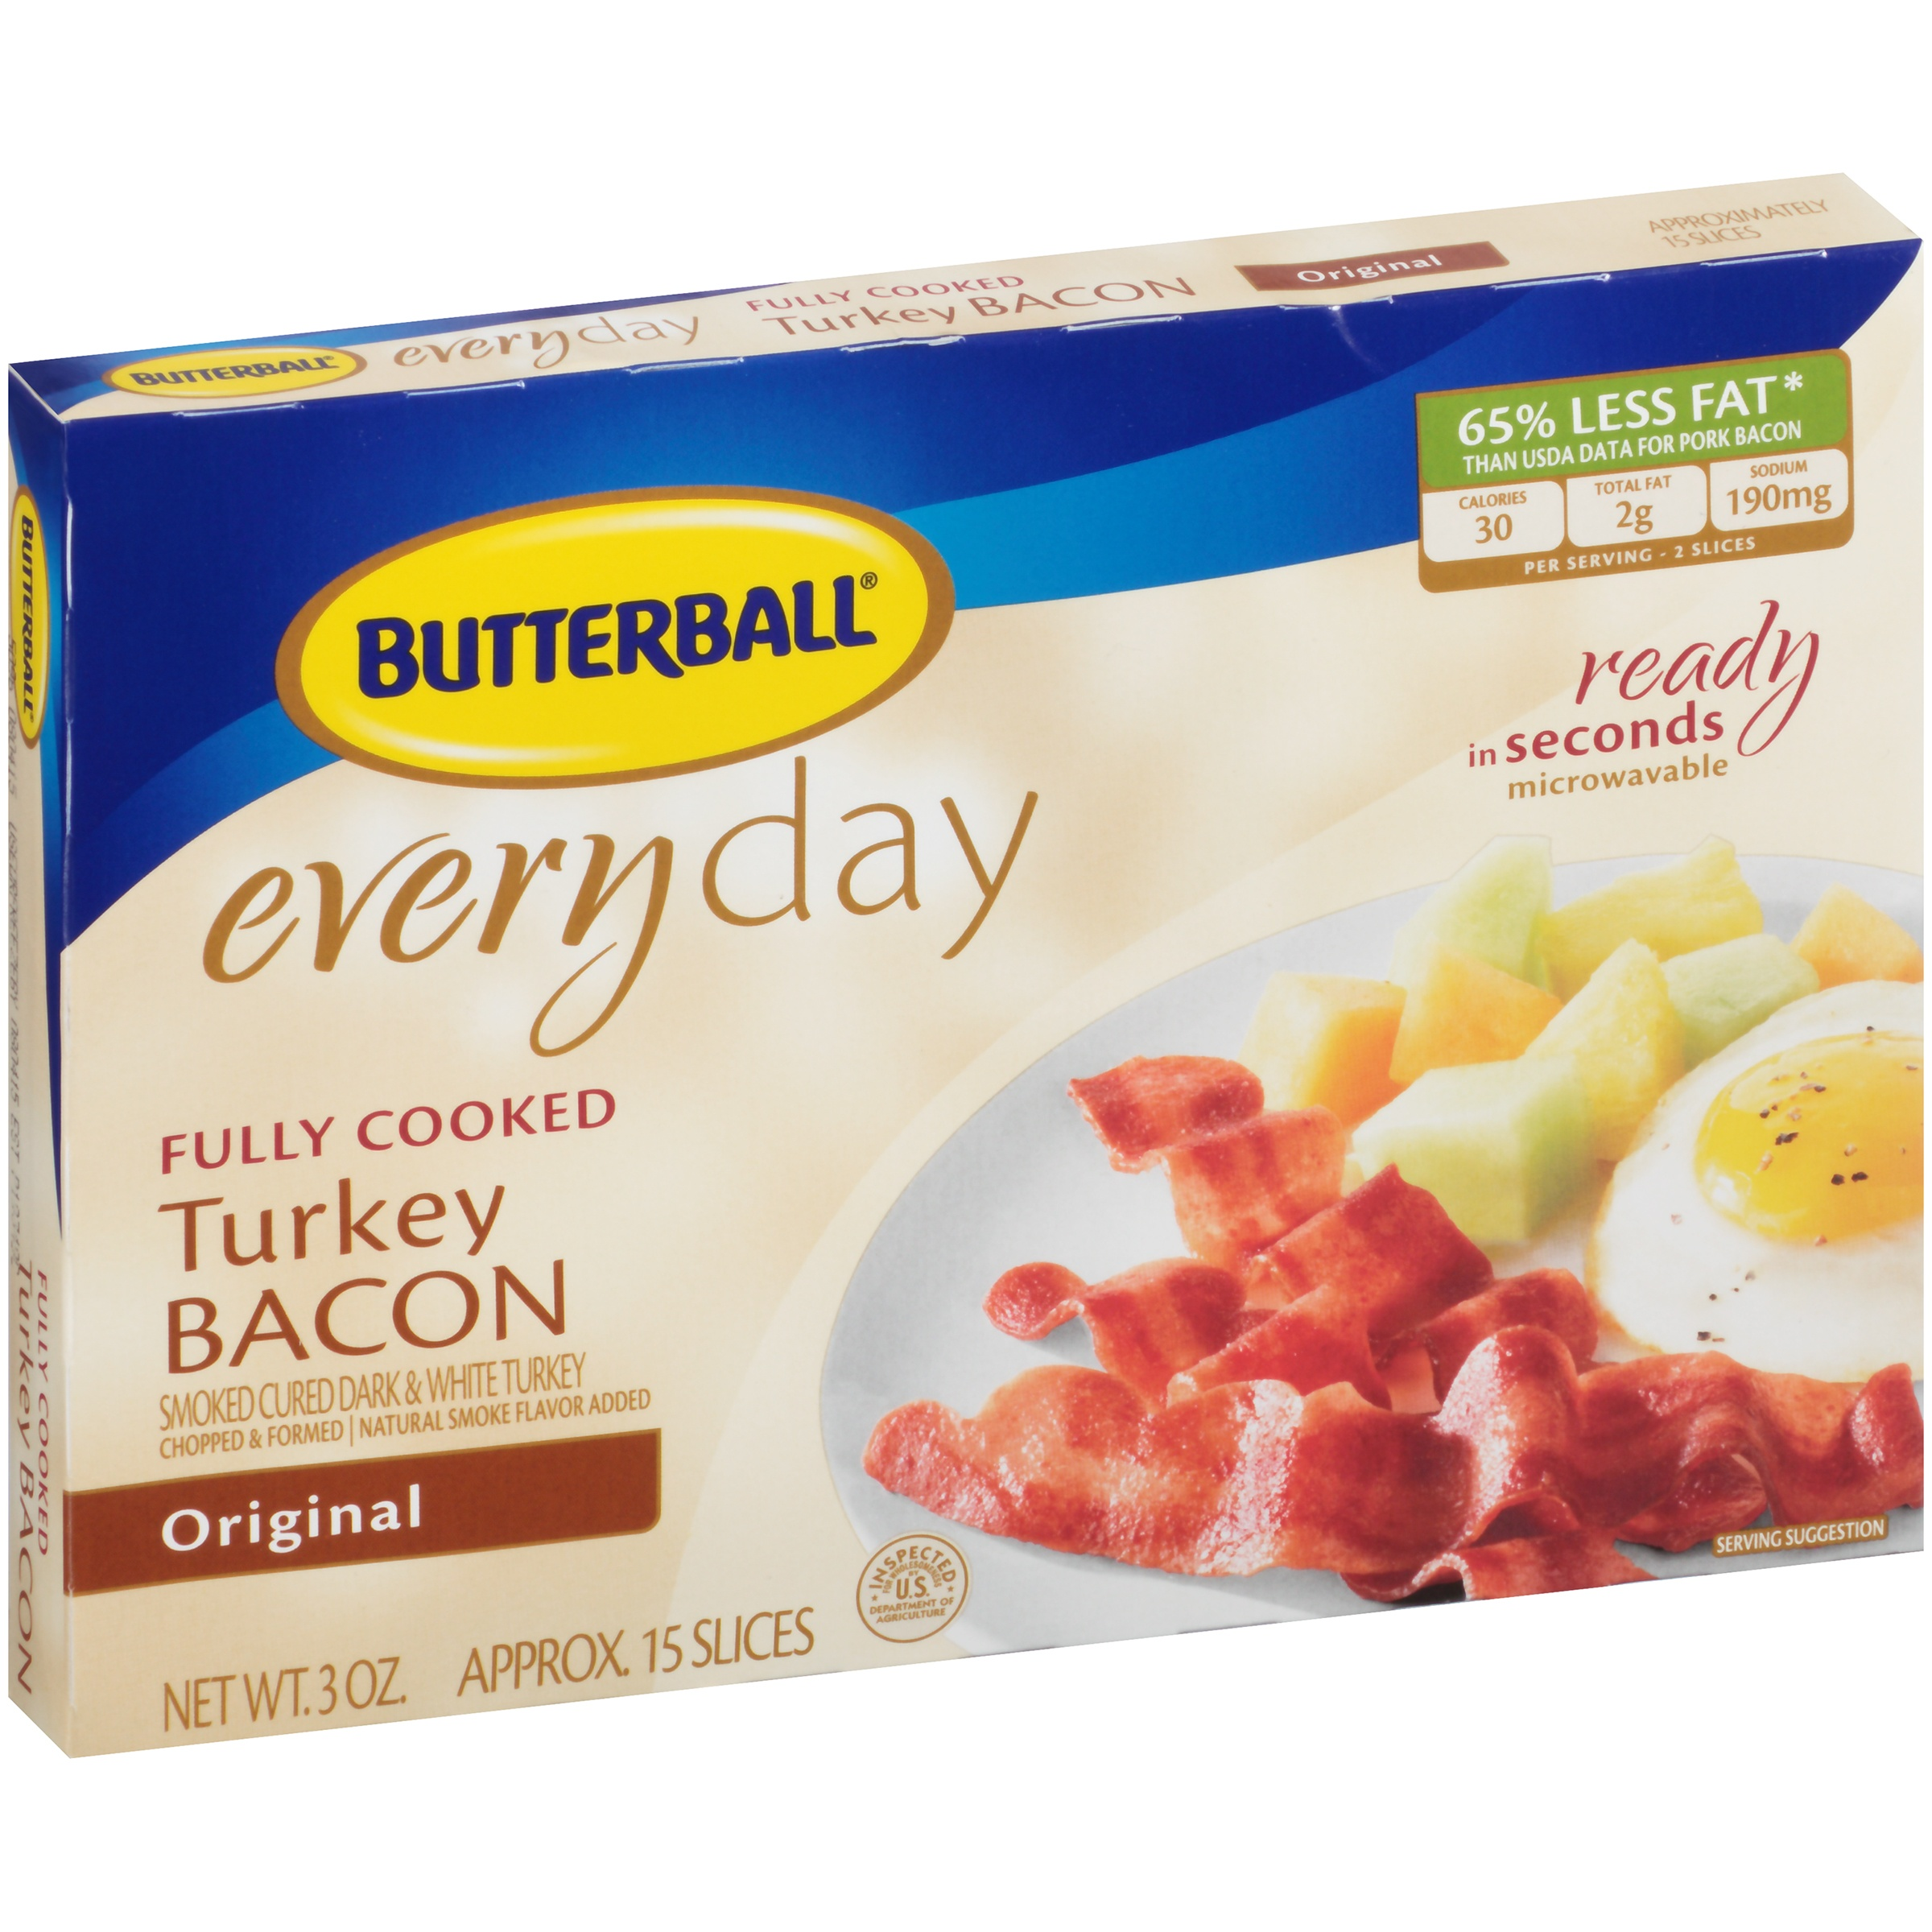 Butterball® Every Day Original Fully Cooked Turkey Bacon 3 oz. Box